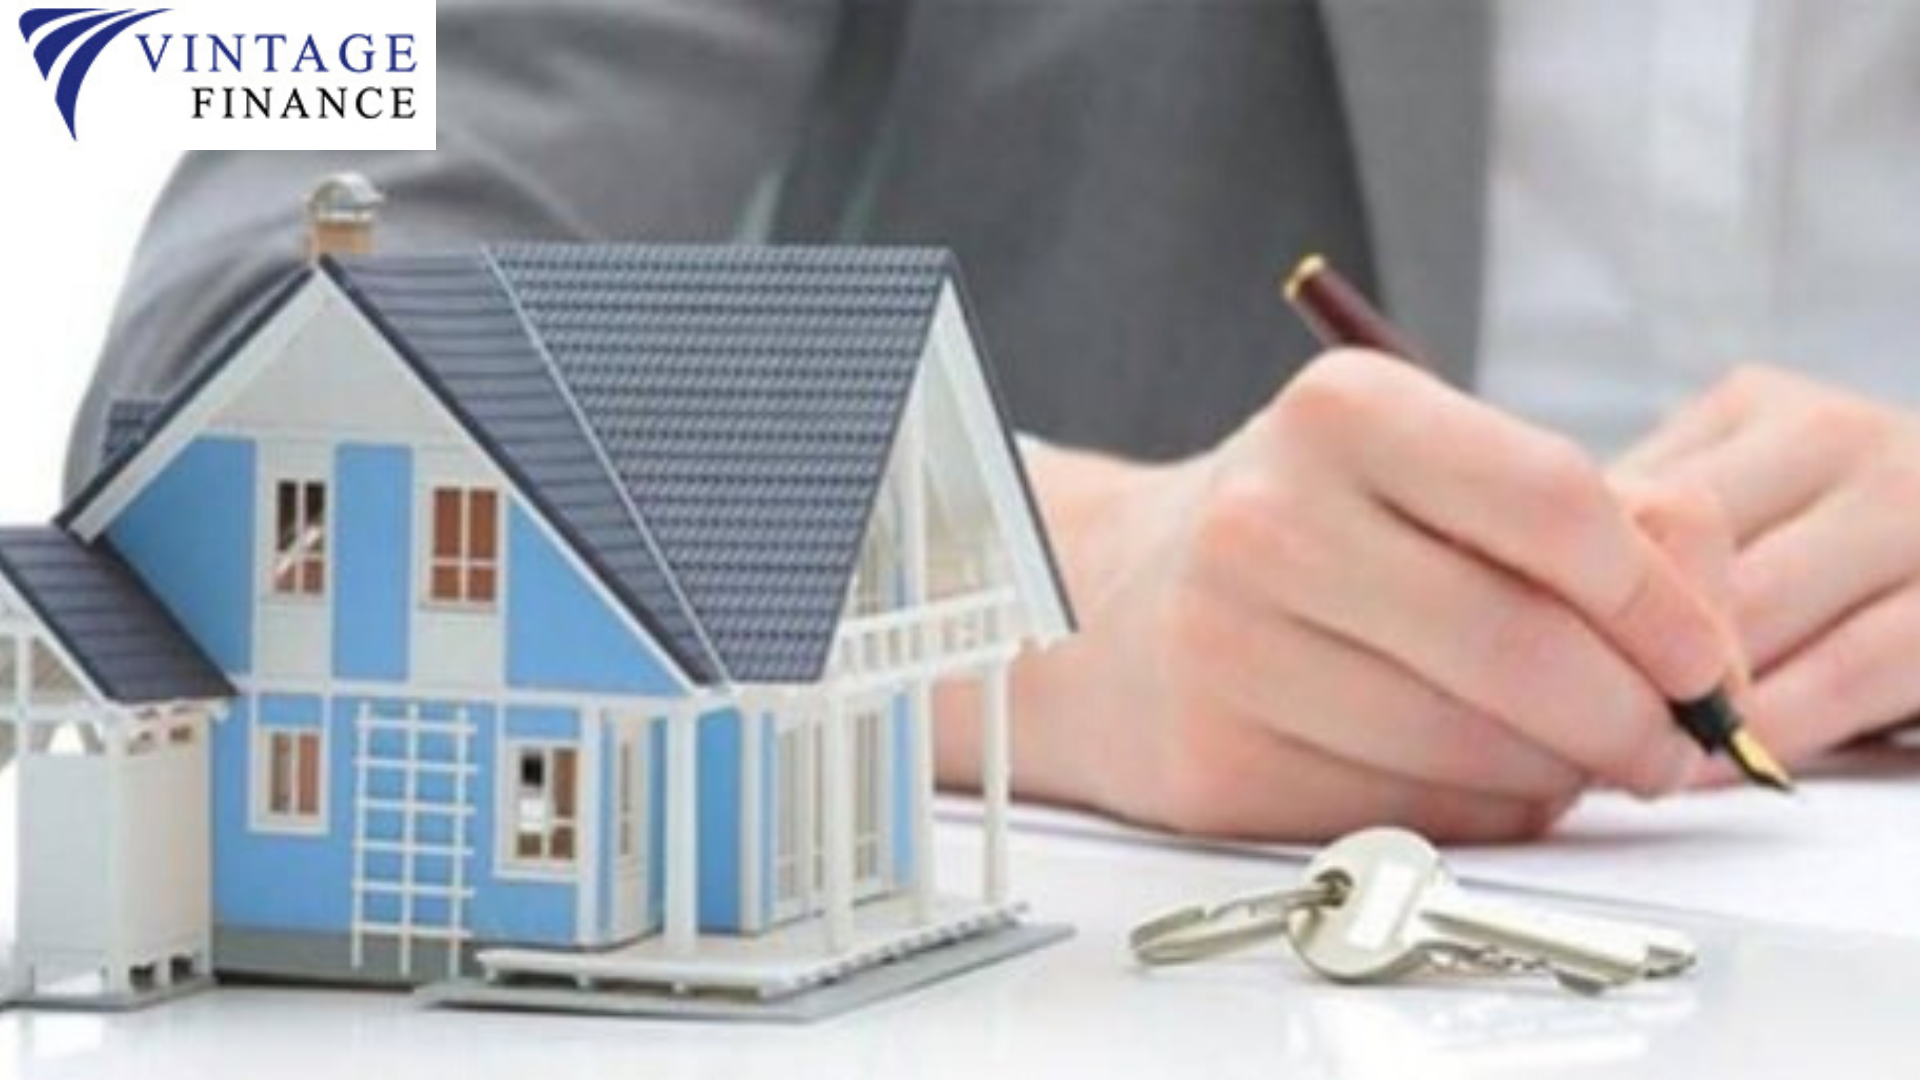 Loan Against Property In Delhi In 2020 Business Loans Home Loans Best Mortgage Lenders